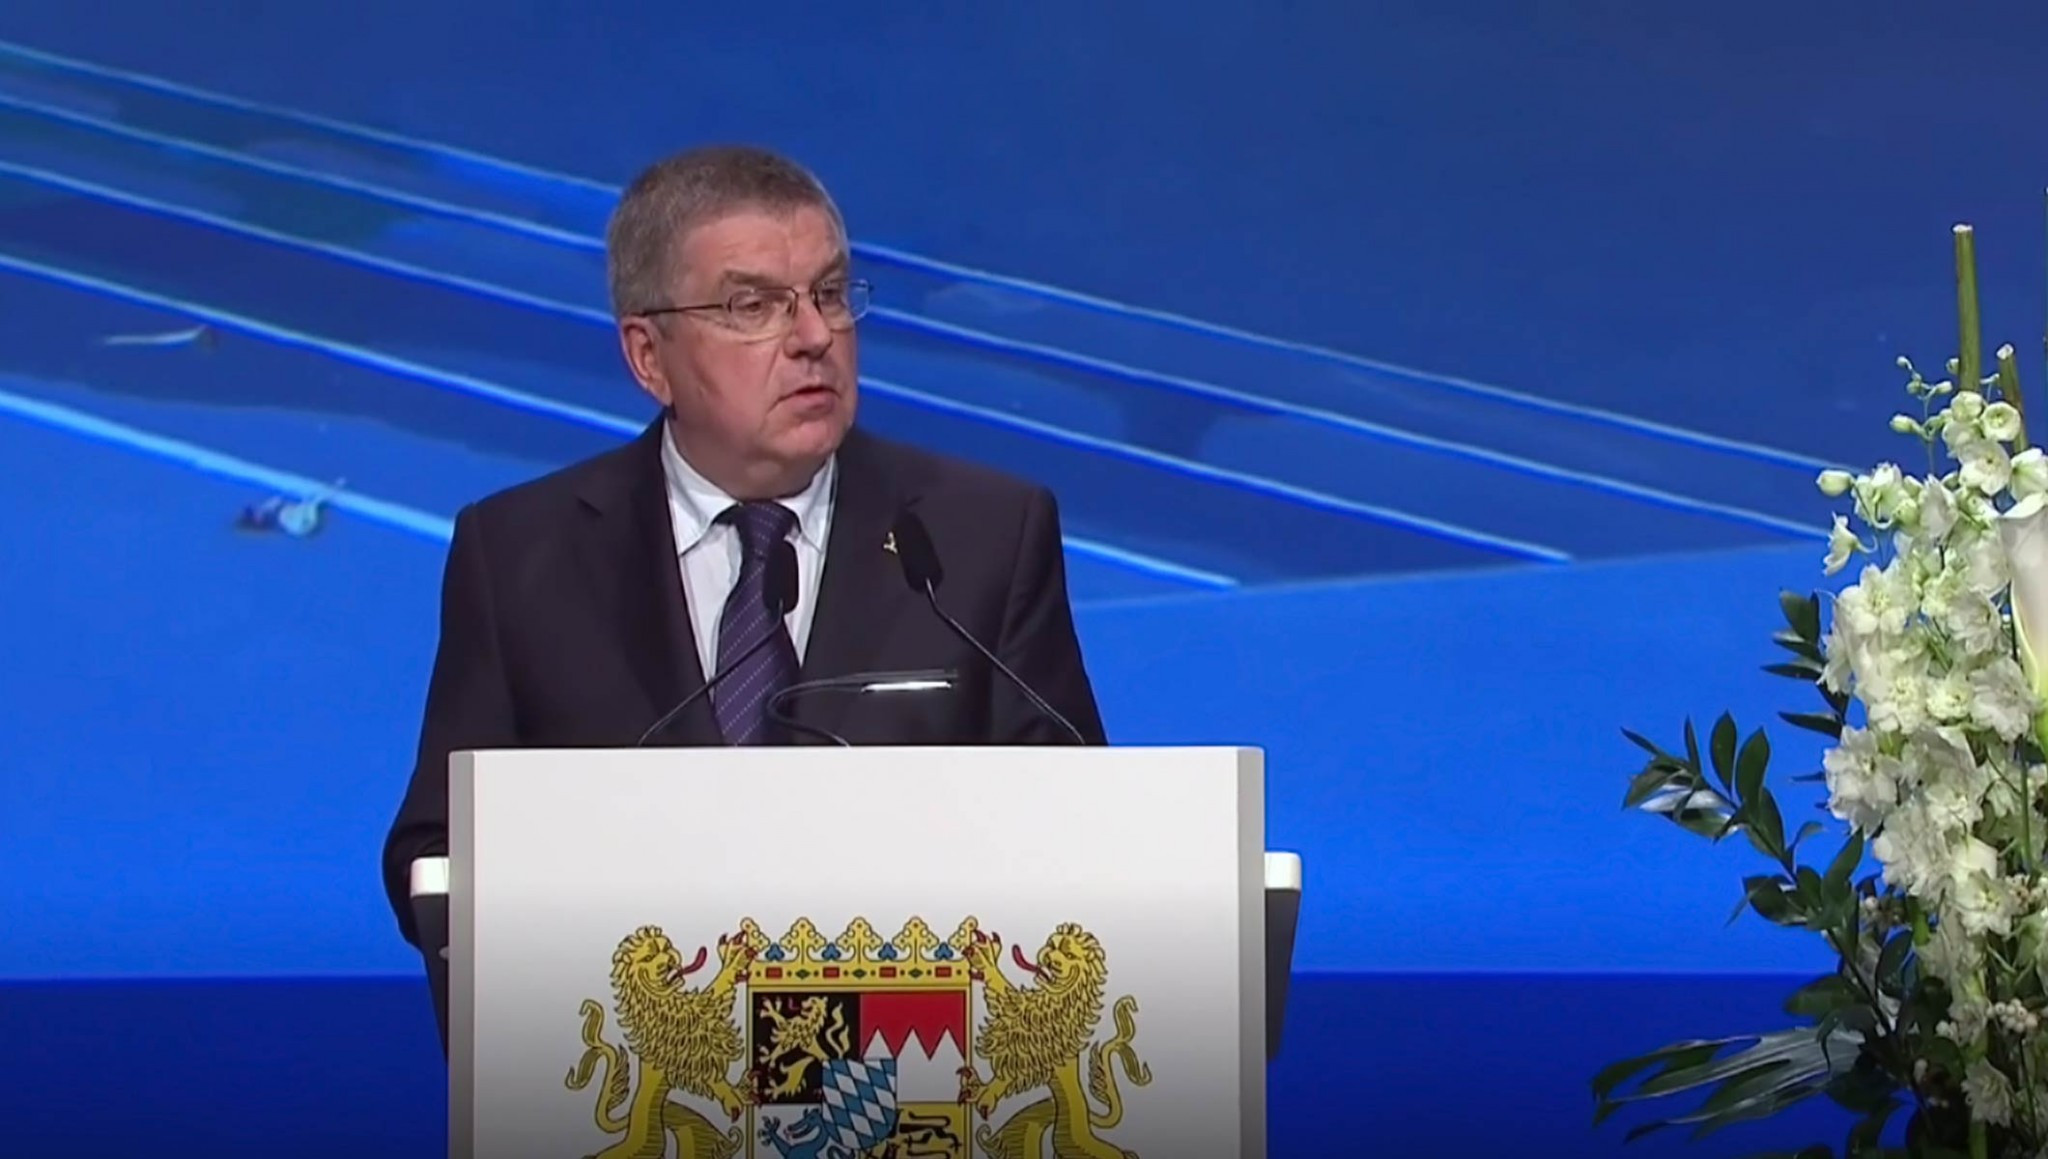 IOC President Thomas Bach attended the launch of a new memorial for victims of the Munich massacre ©IOC